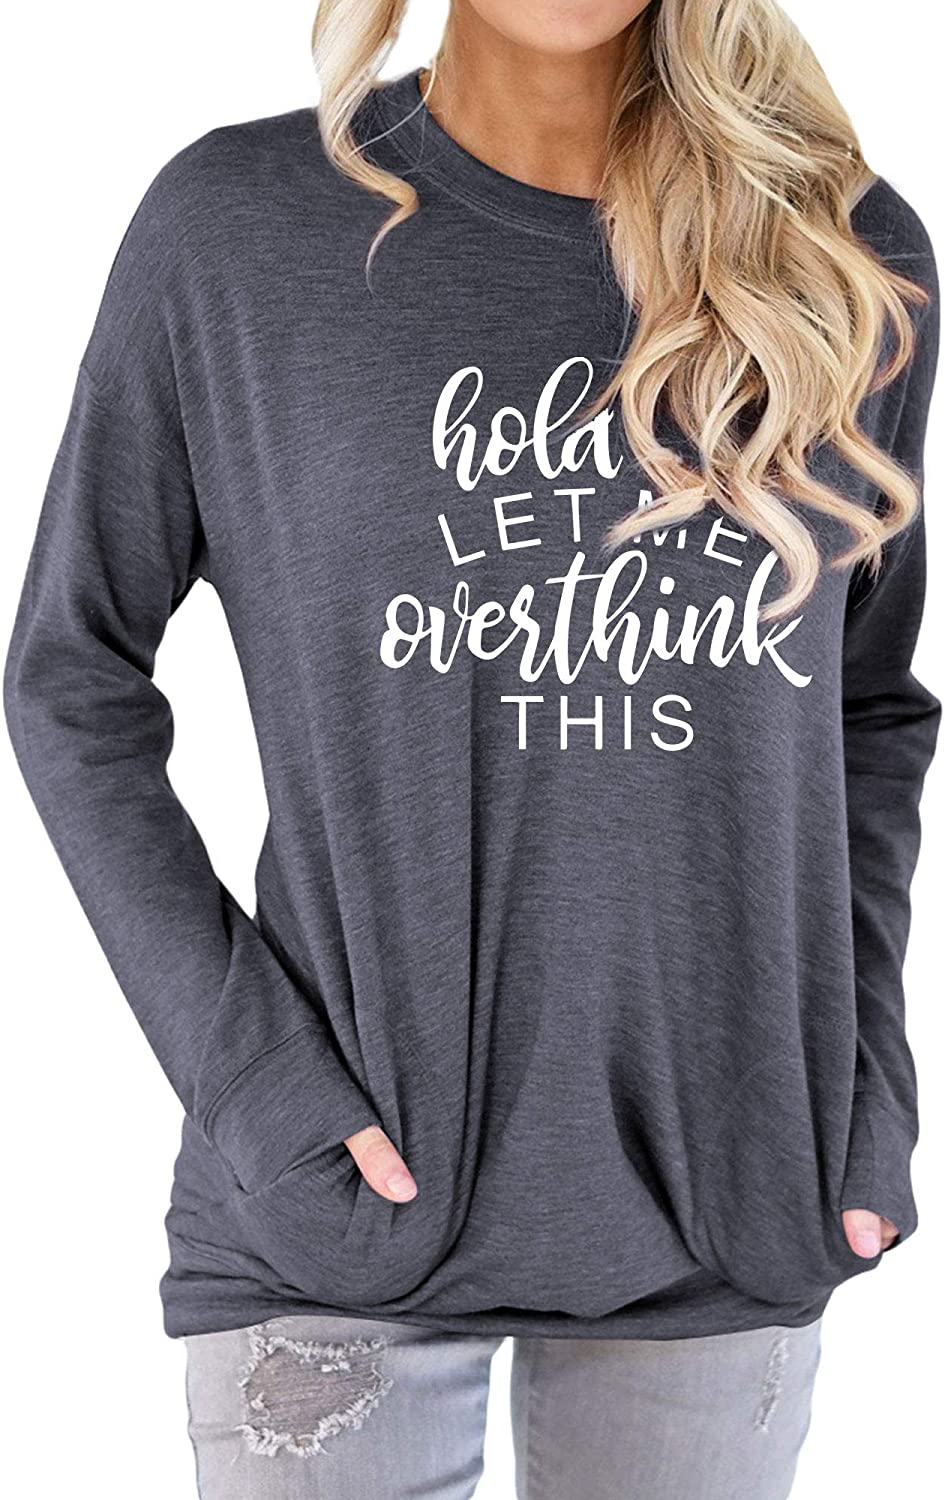 Hubery Women Hold on Let Me Overthink This Print Long Sleeve Sweatshirts with Pockets